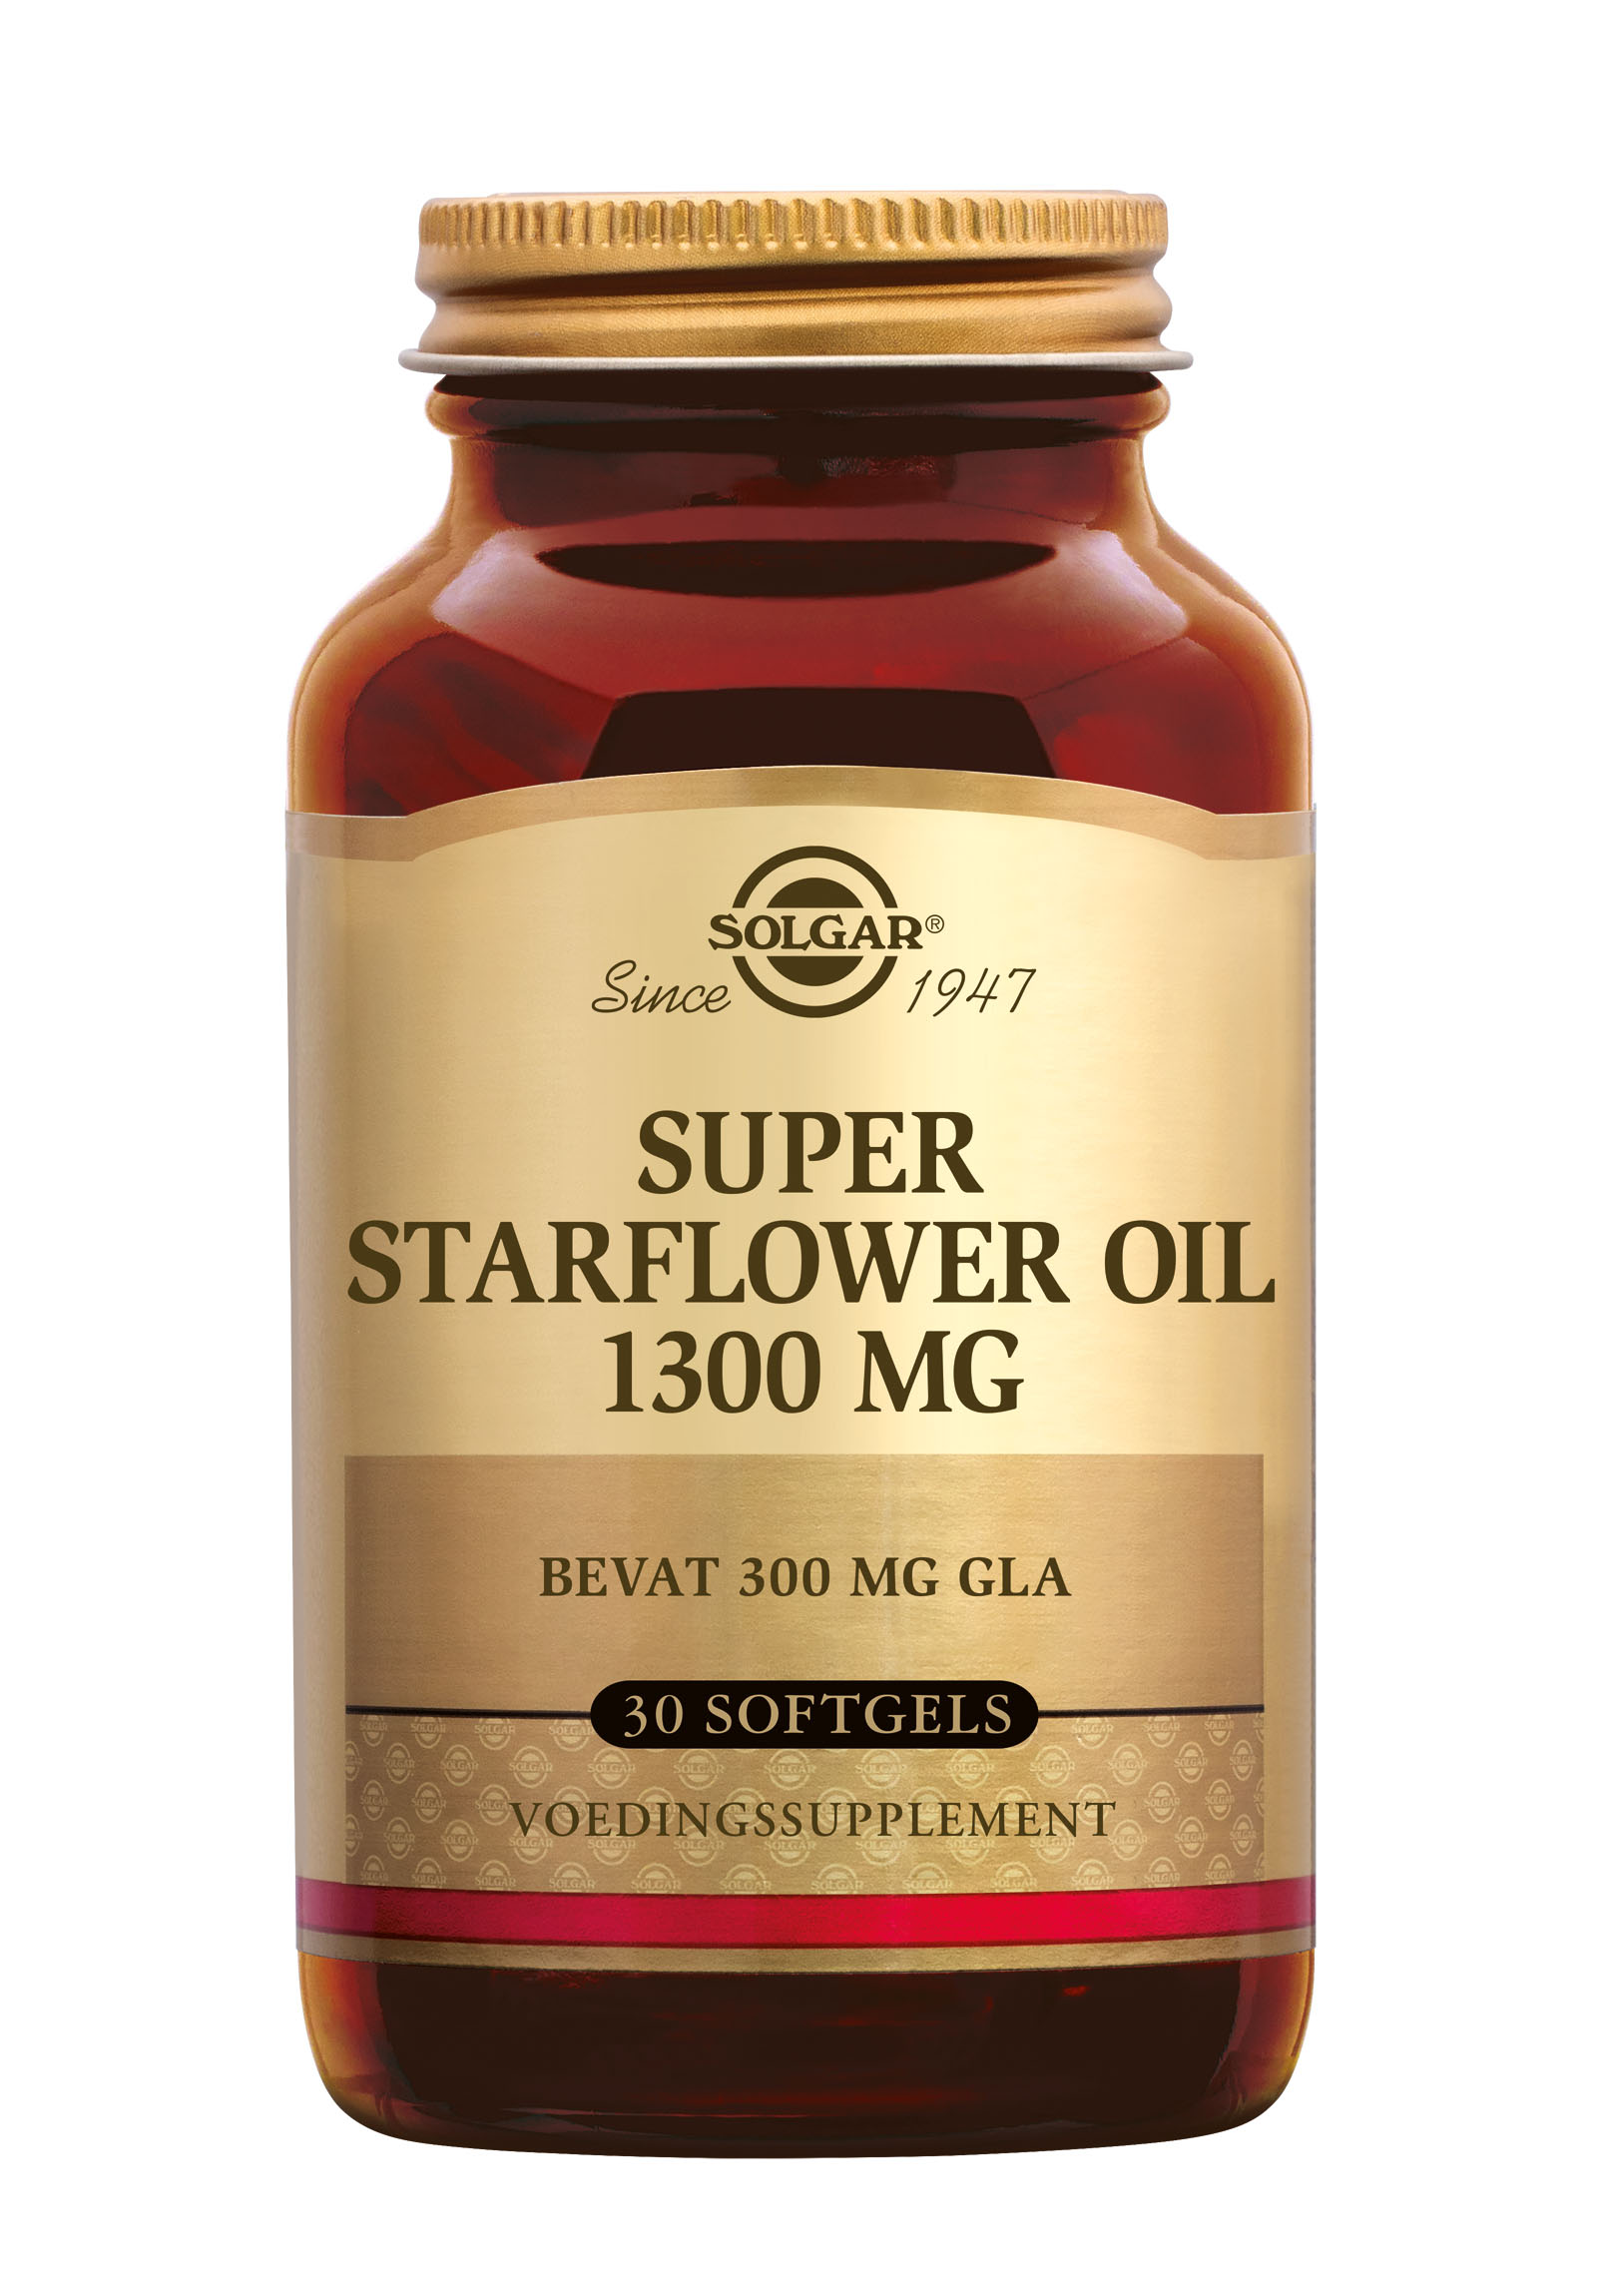 Super Starflower Oil 1300 mg (300 mg GLA)